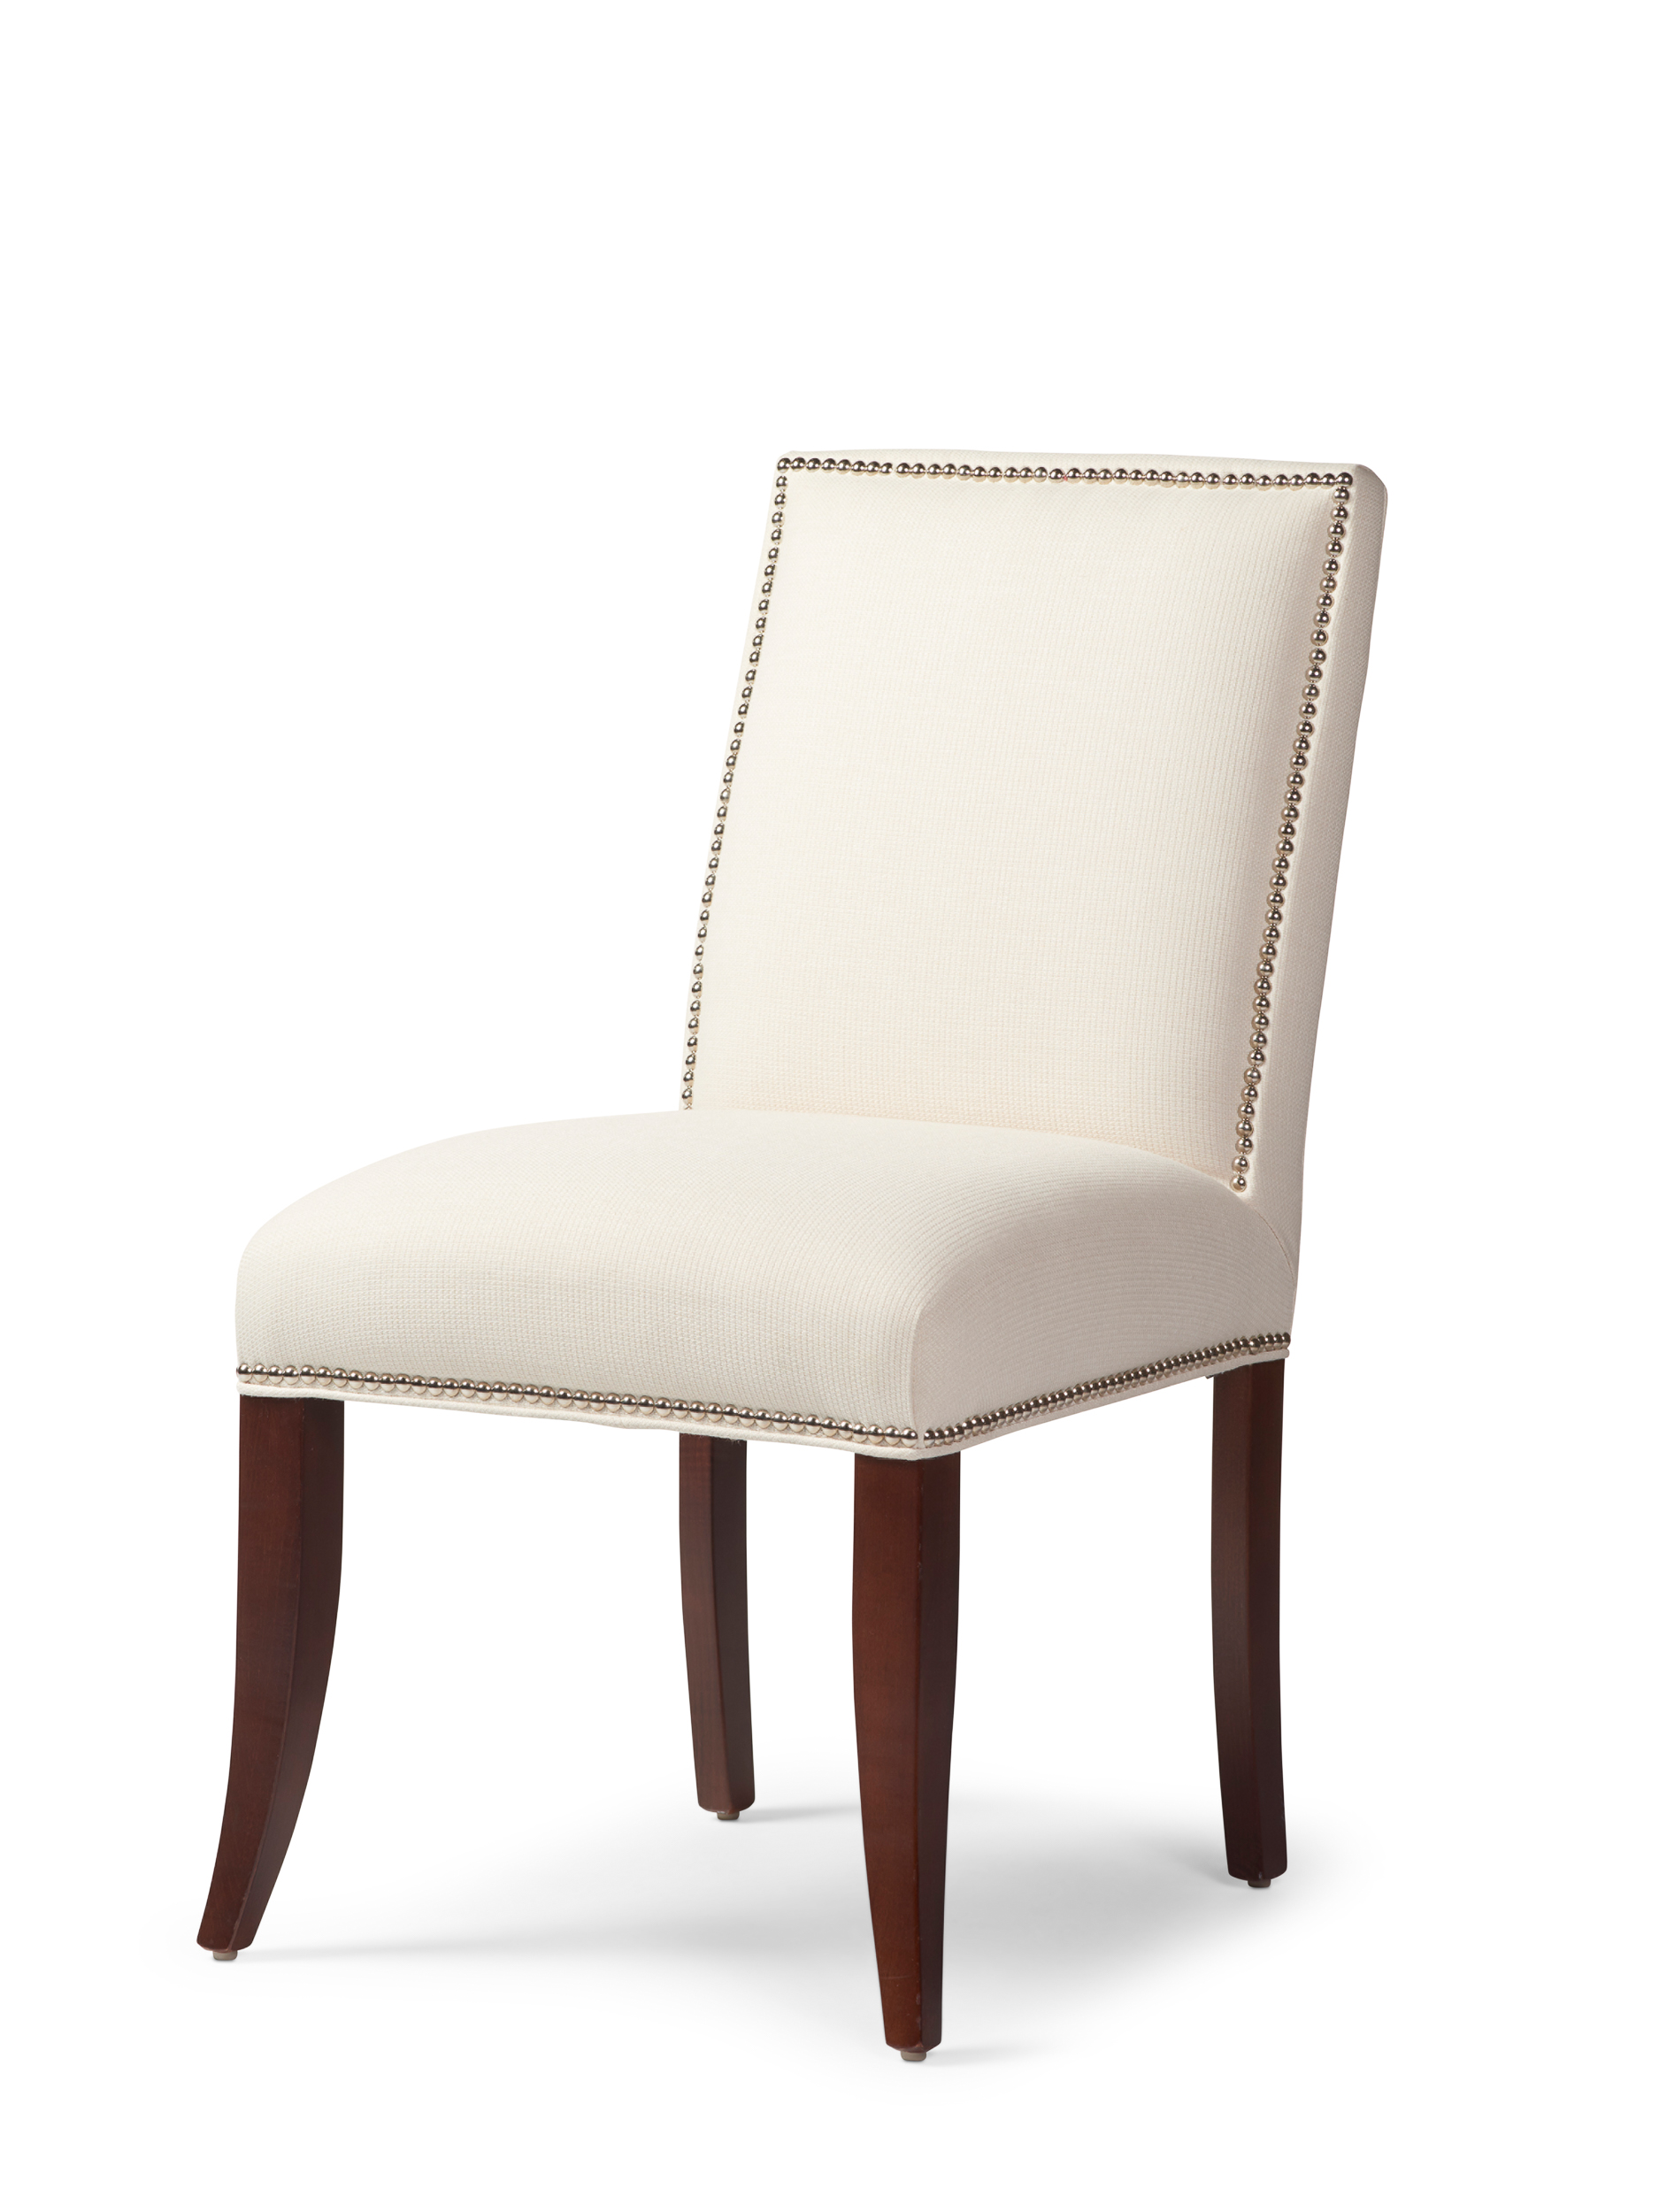 6095 Side Chair